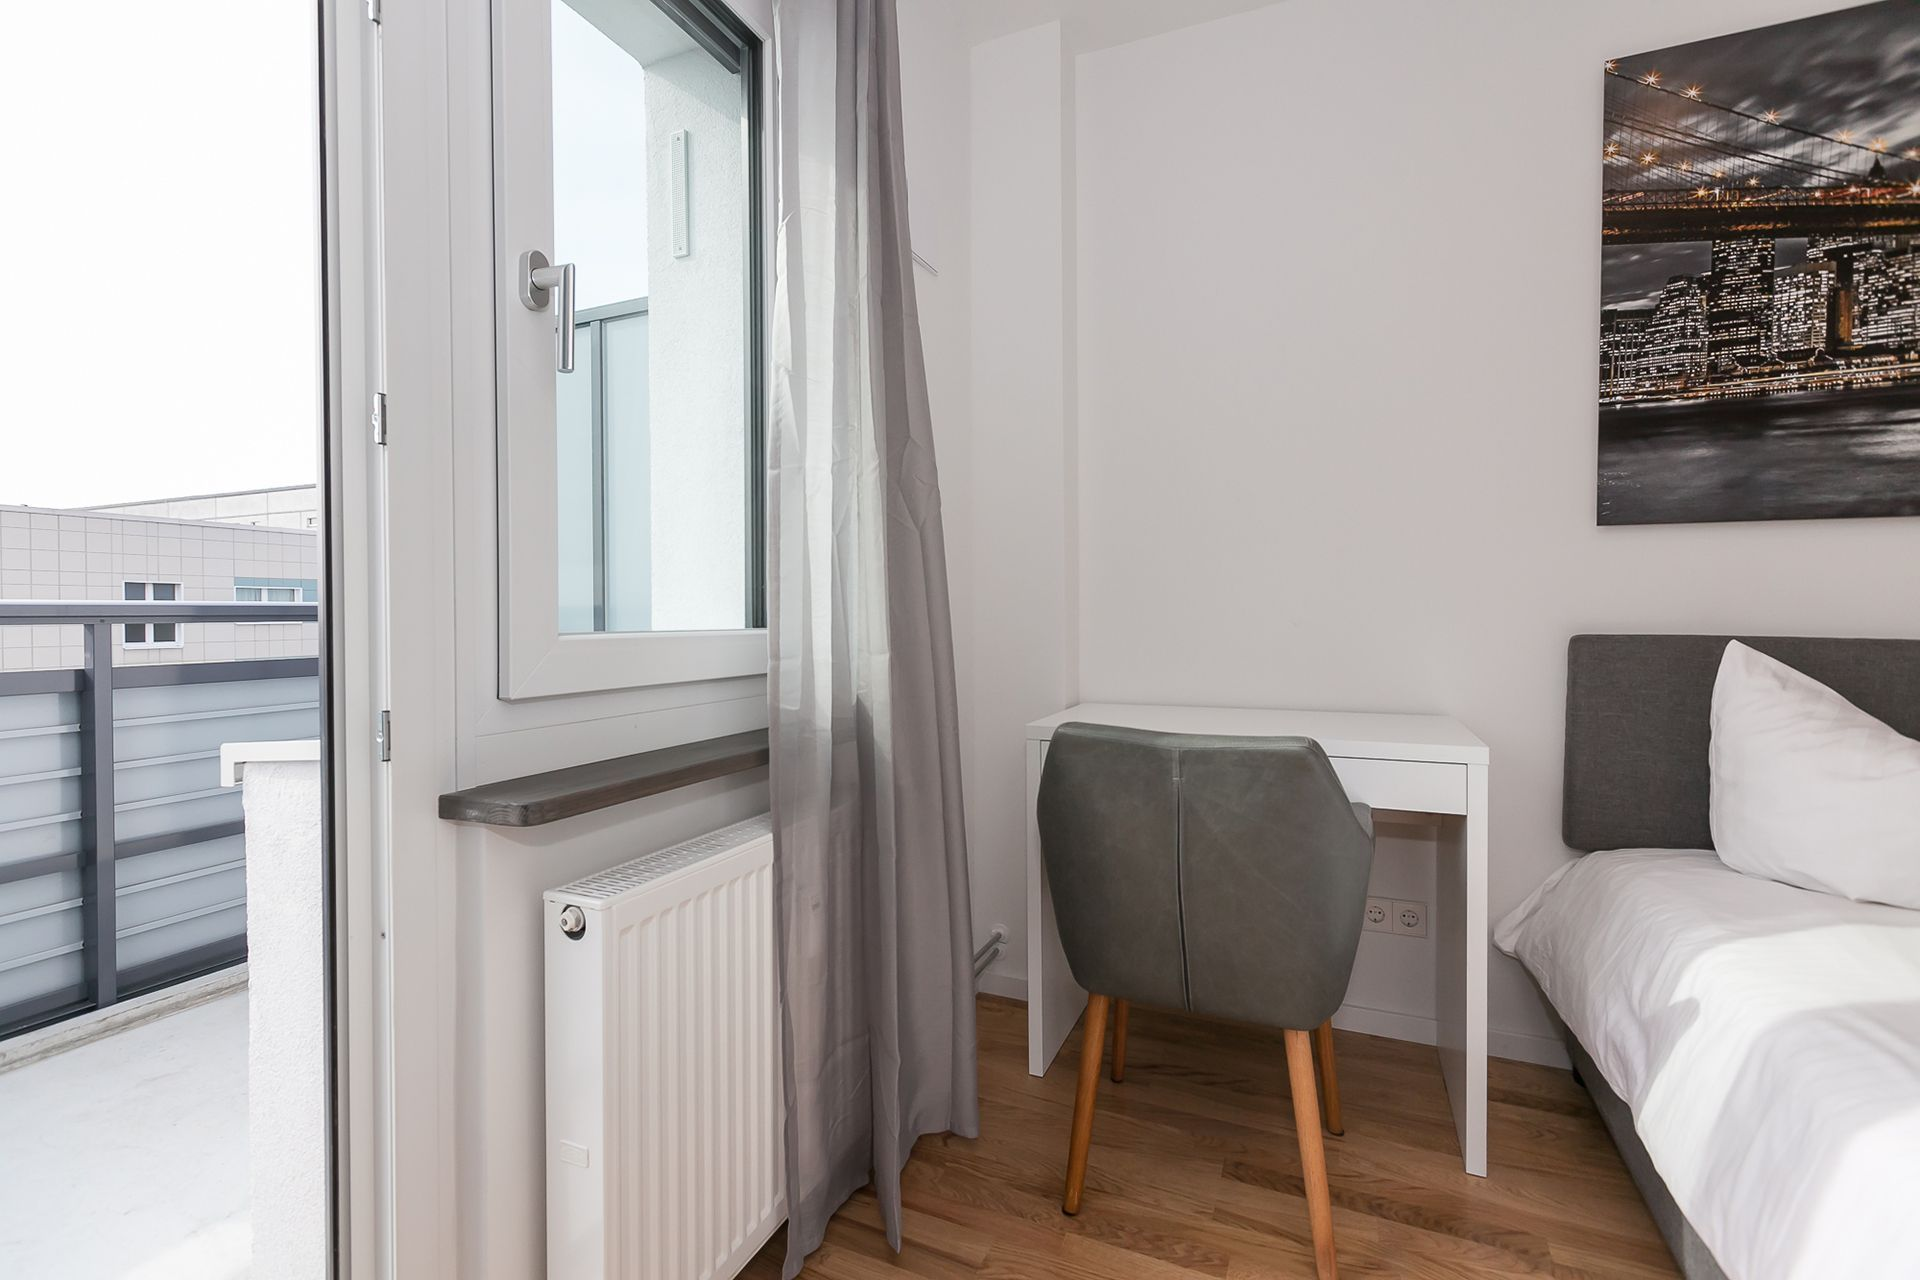 1 Bedroom - Small apartment to rent in Berlin KOEP-KOEP-0512-0